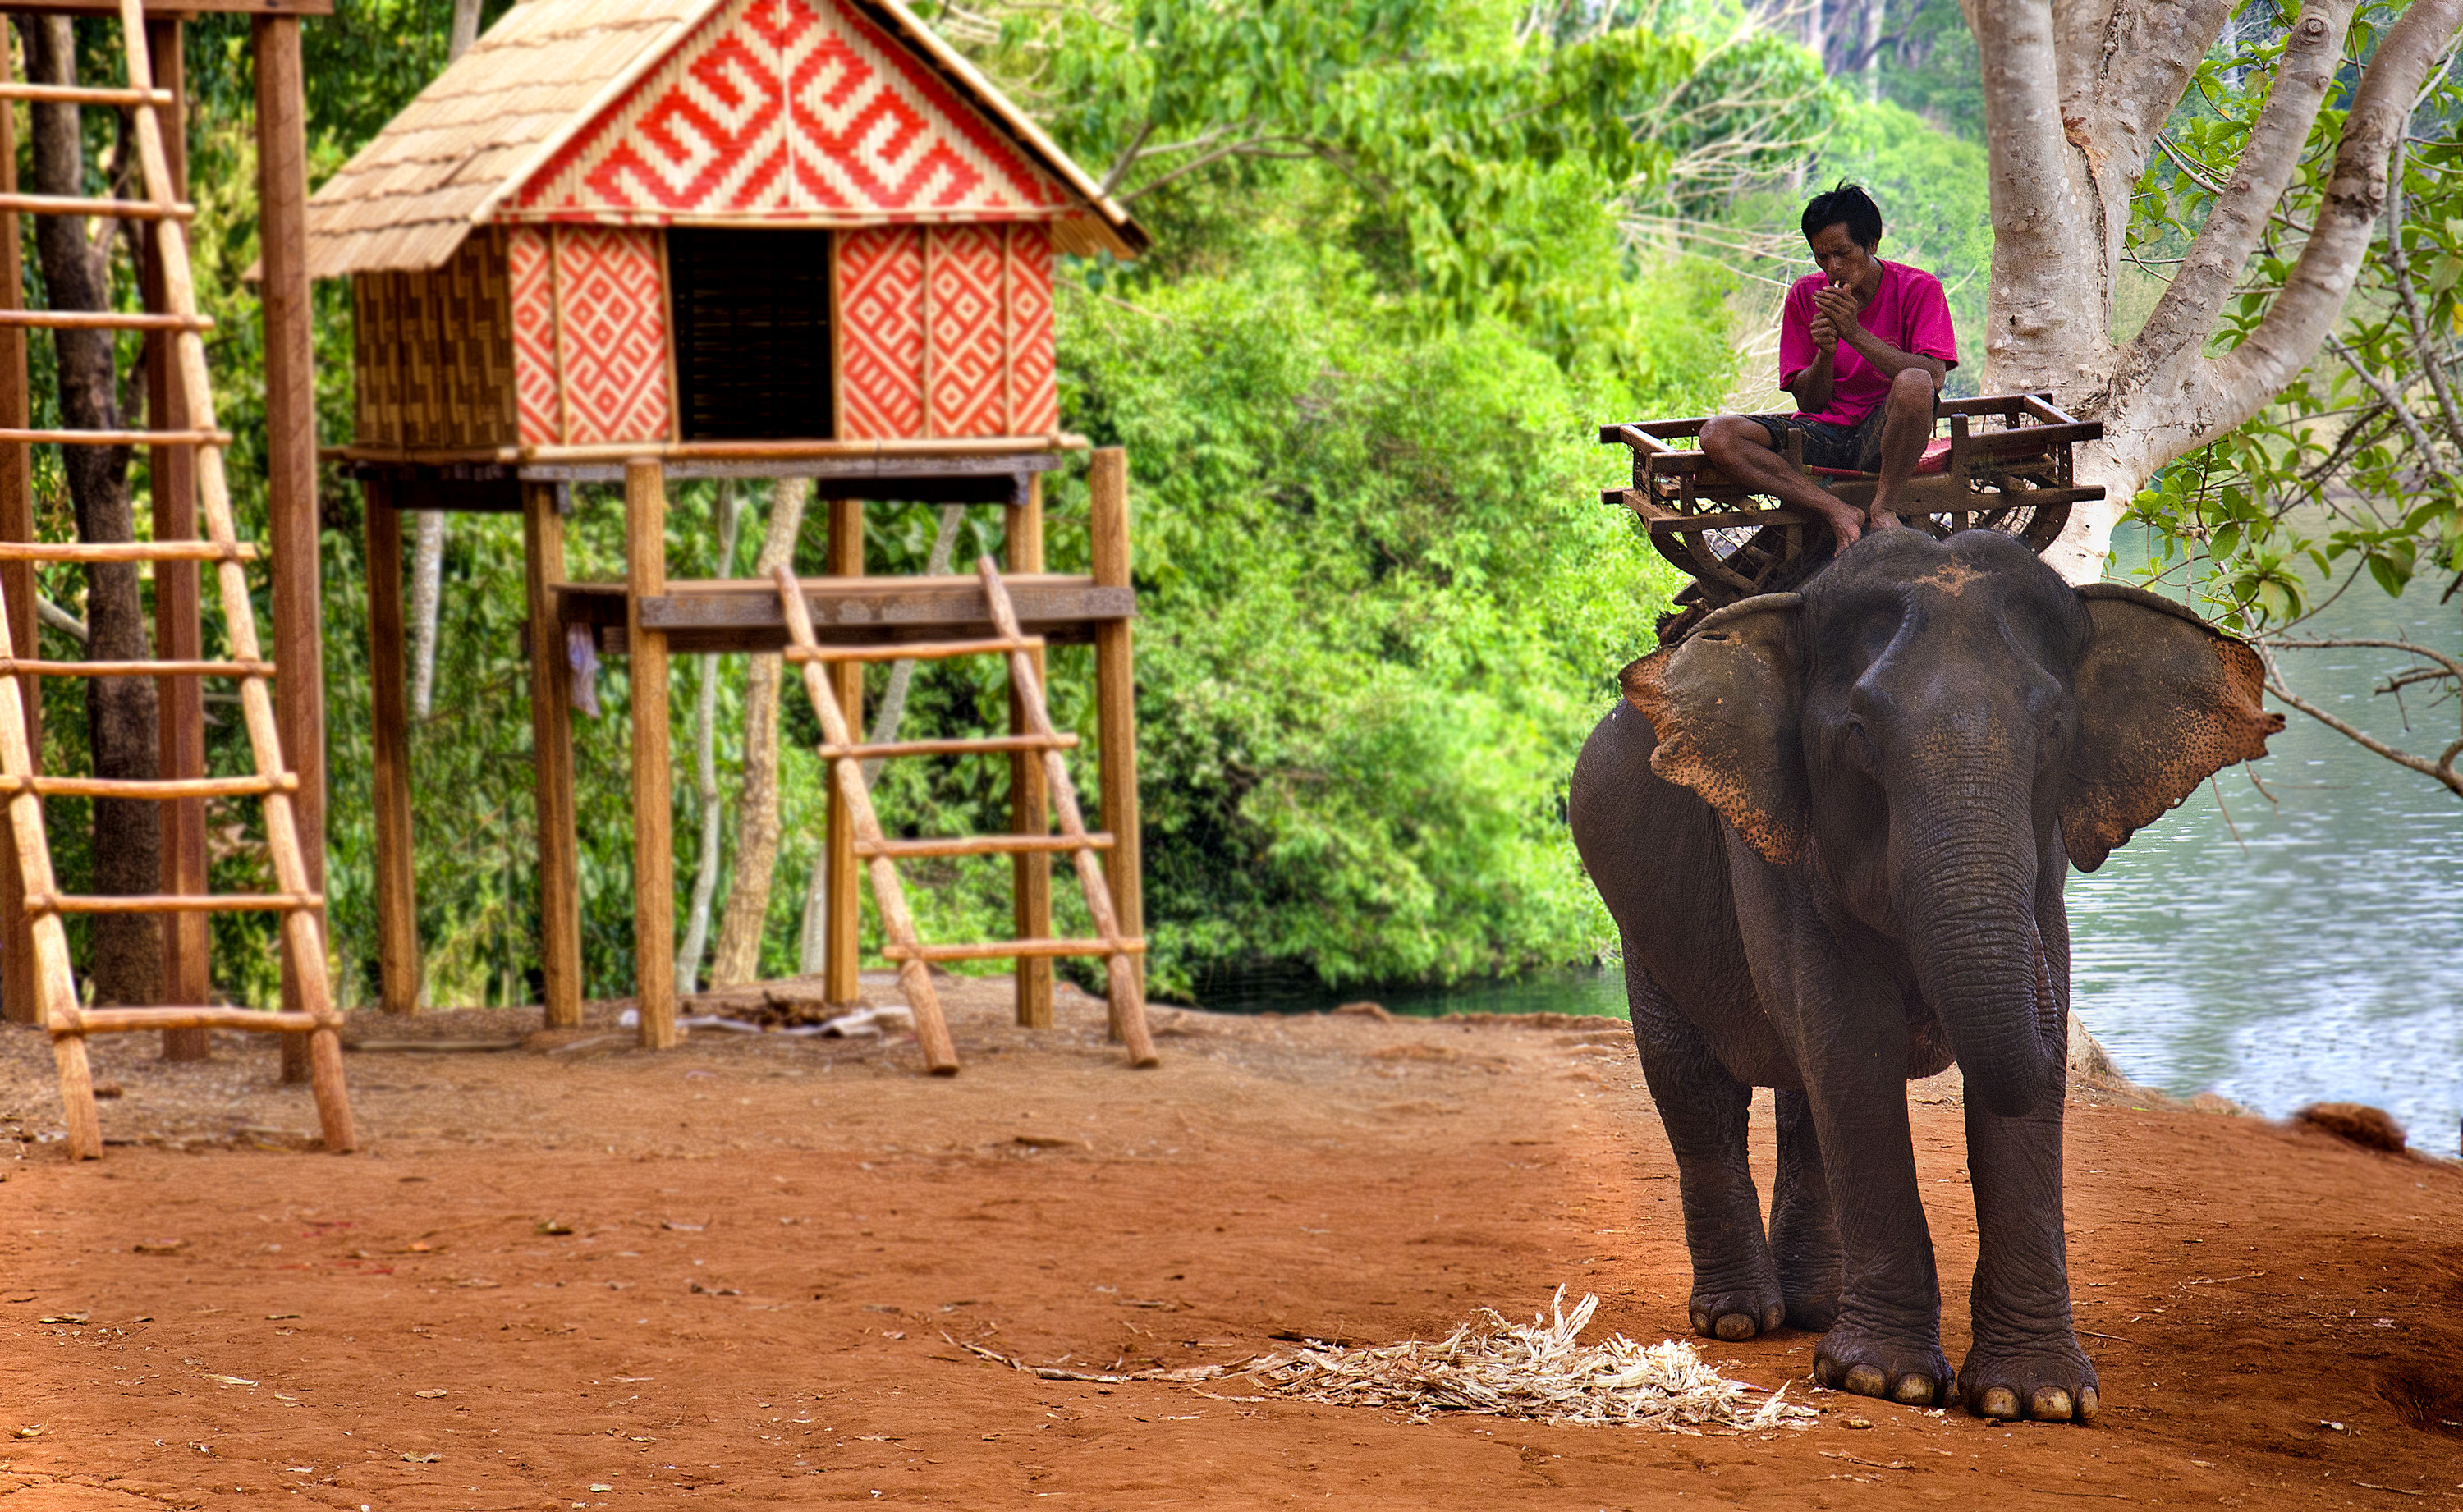 About: An Asian elephant, ridden by a Tampuan man